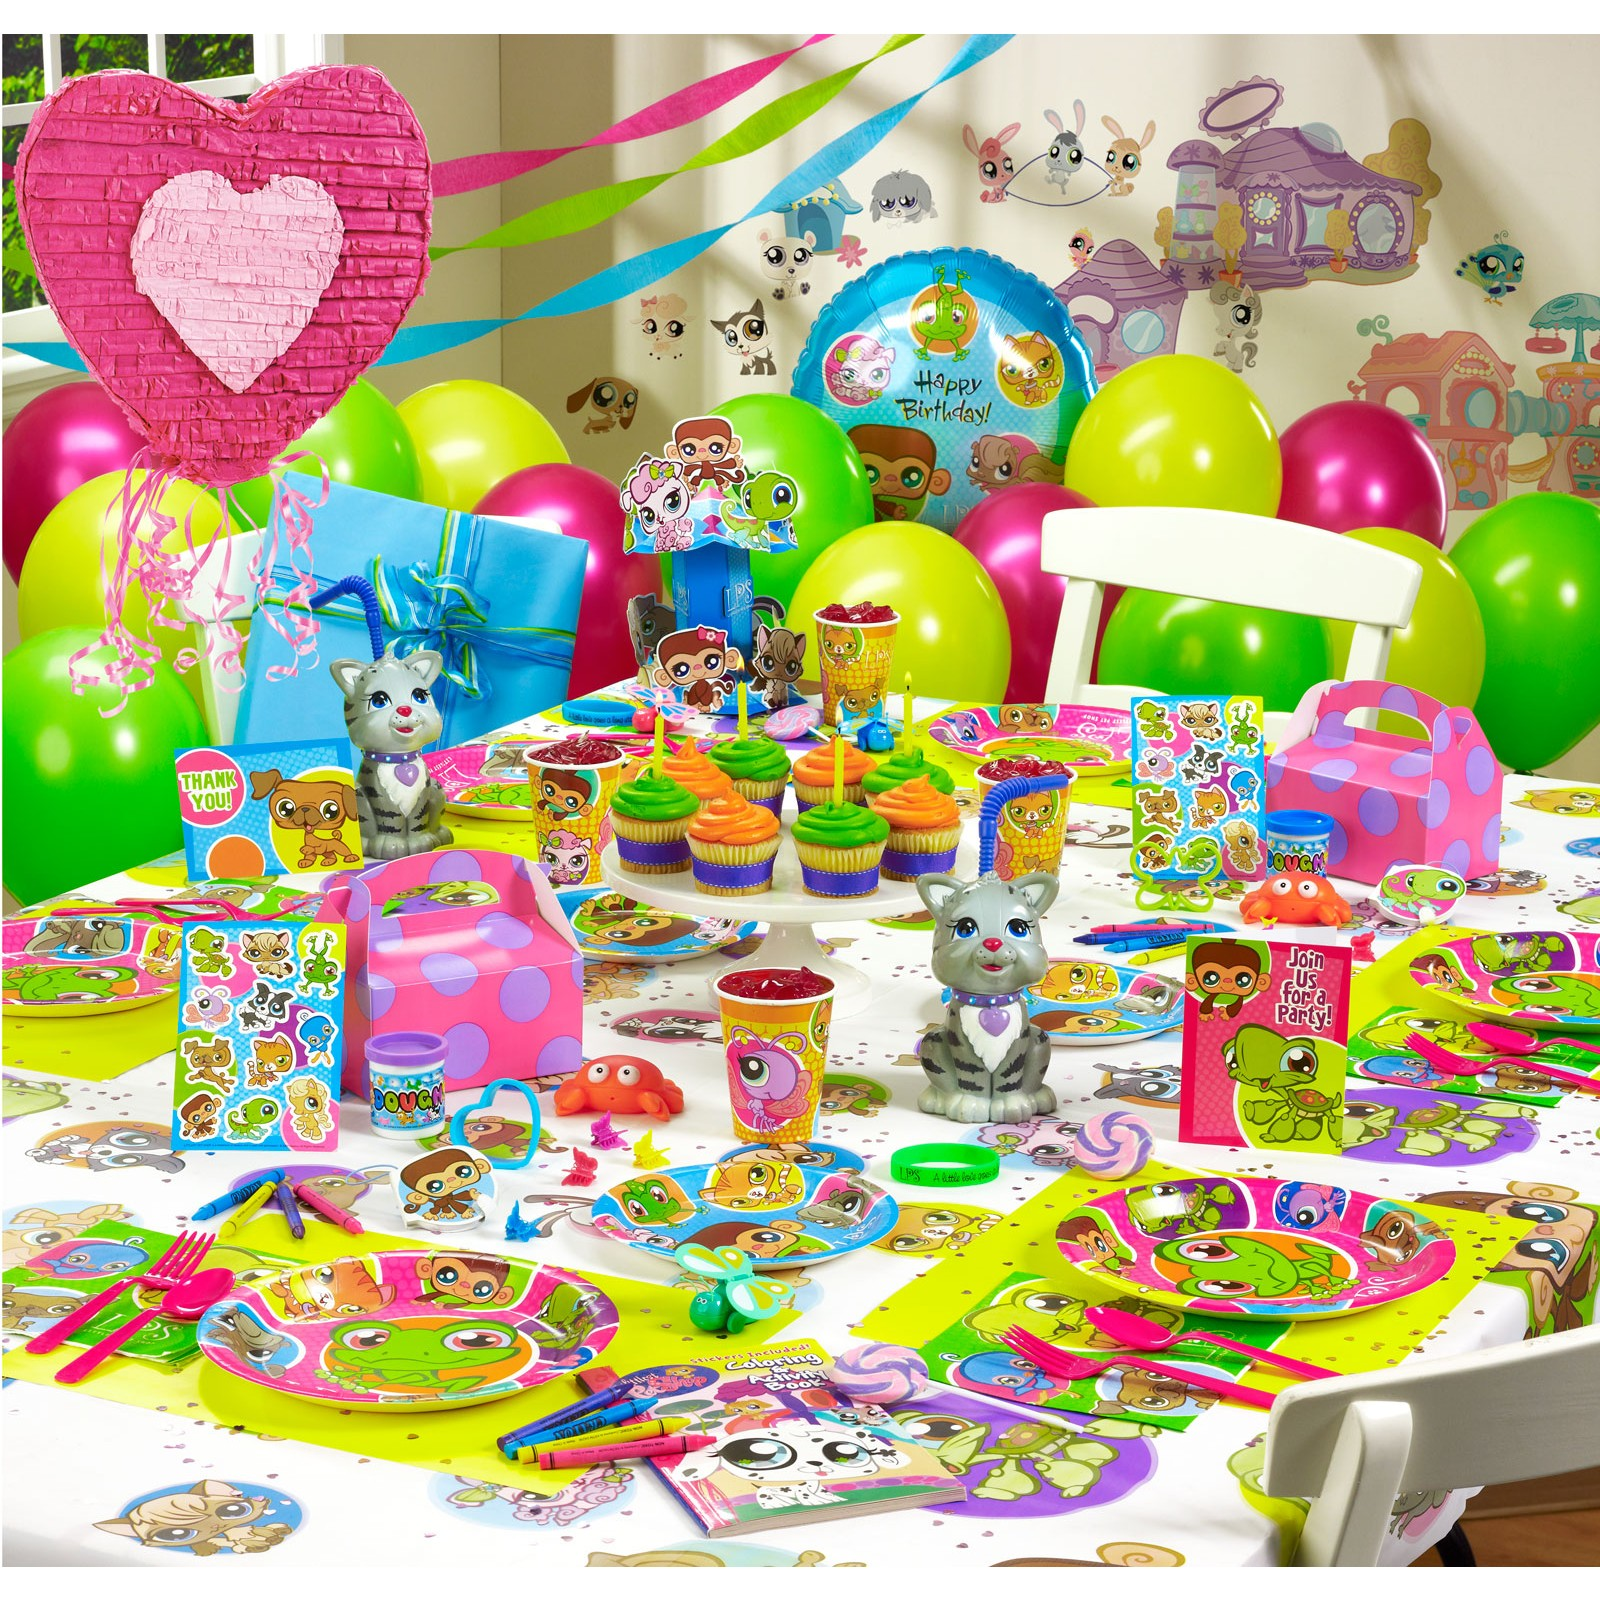 Decoraciones Originales Para Fiestas Infantiles Eventos | Tattoo ...